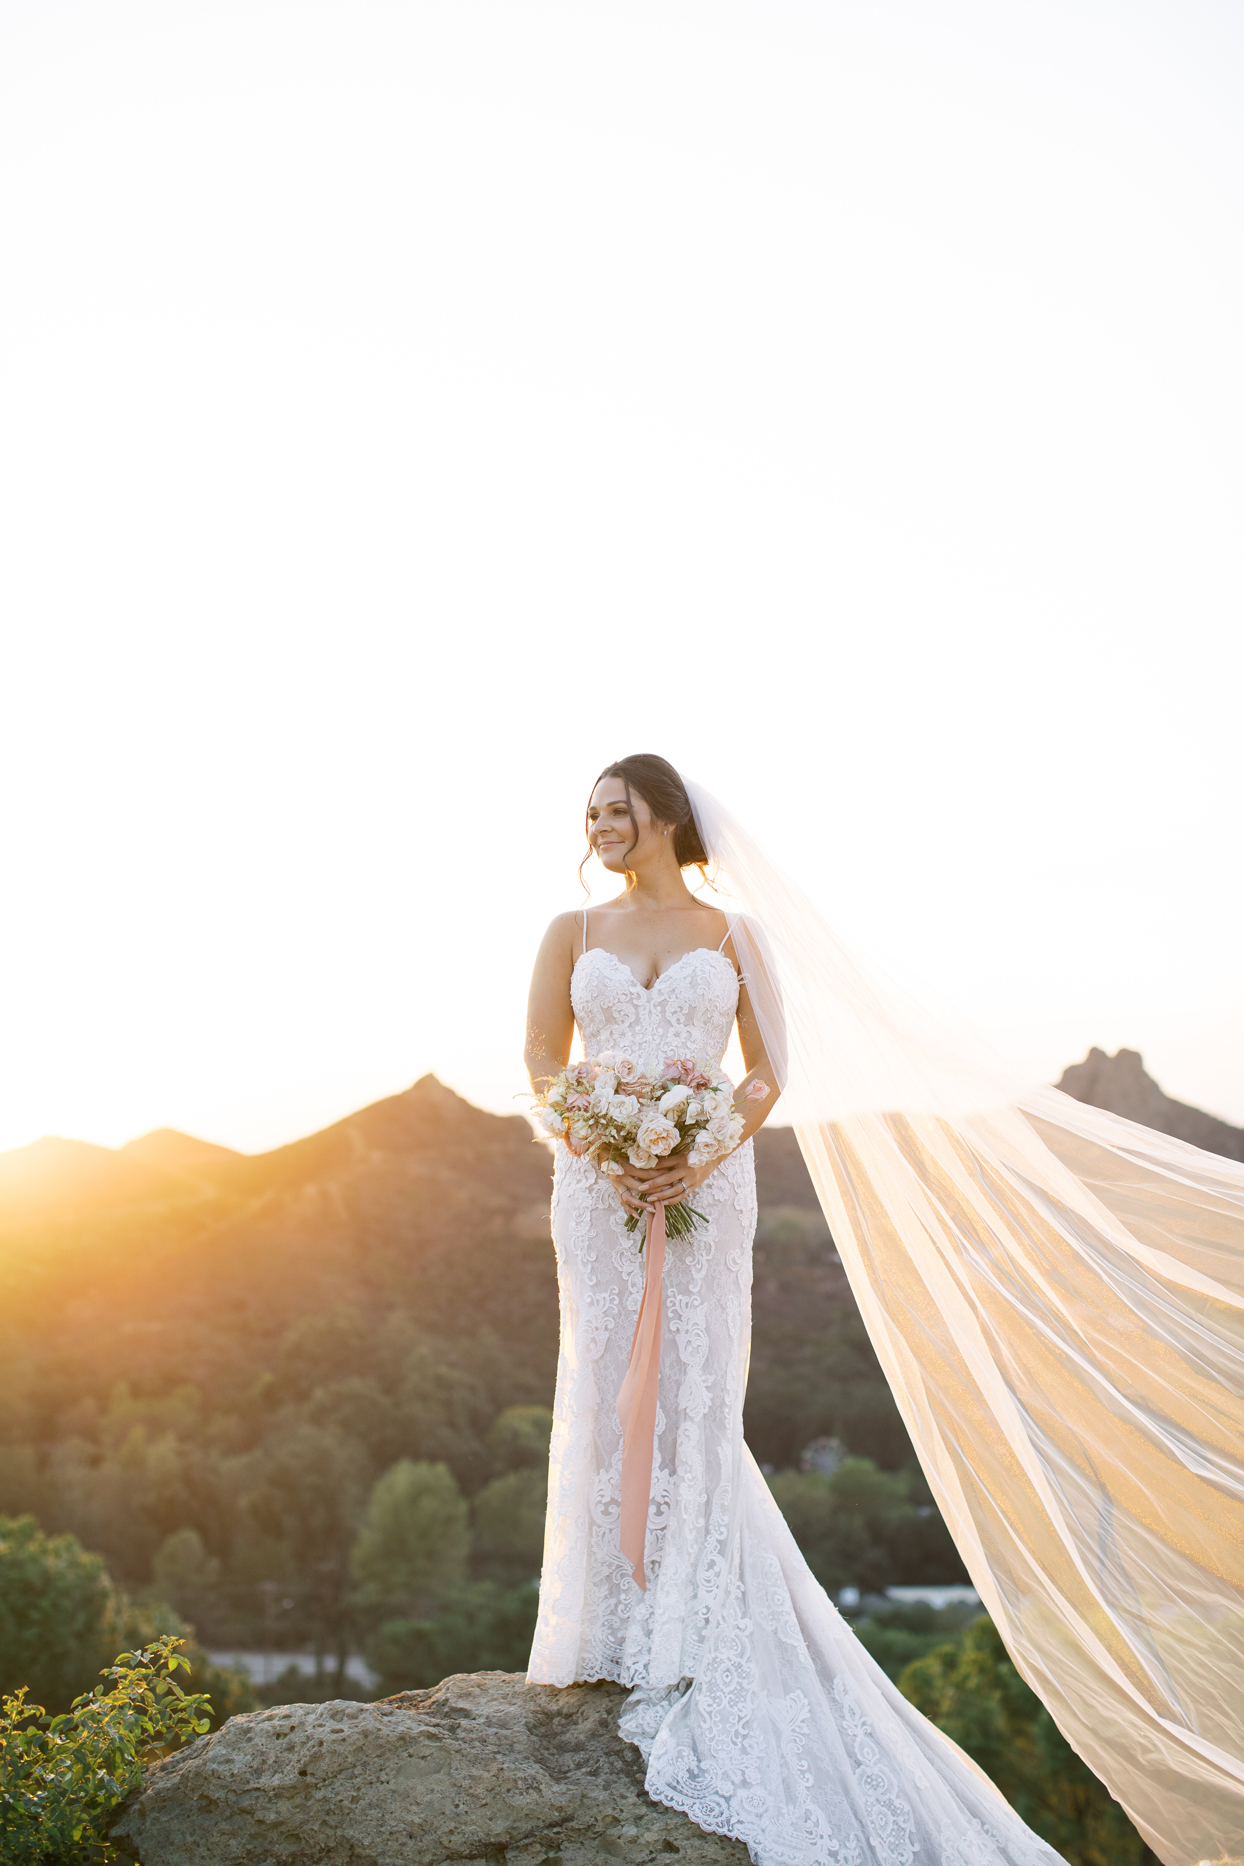 Bride wearing a fit and flare Angel Rivera gown with a sweetheart neckline, lace appliques, and beading details